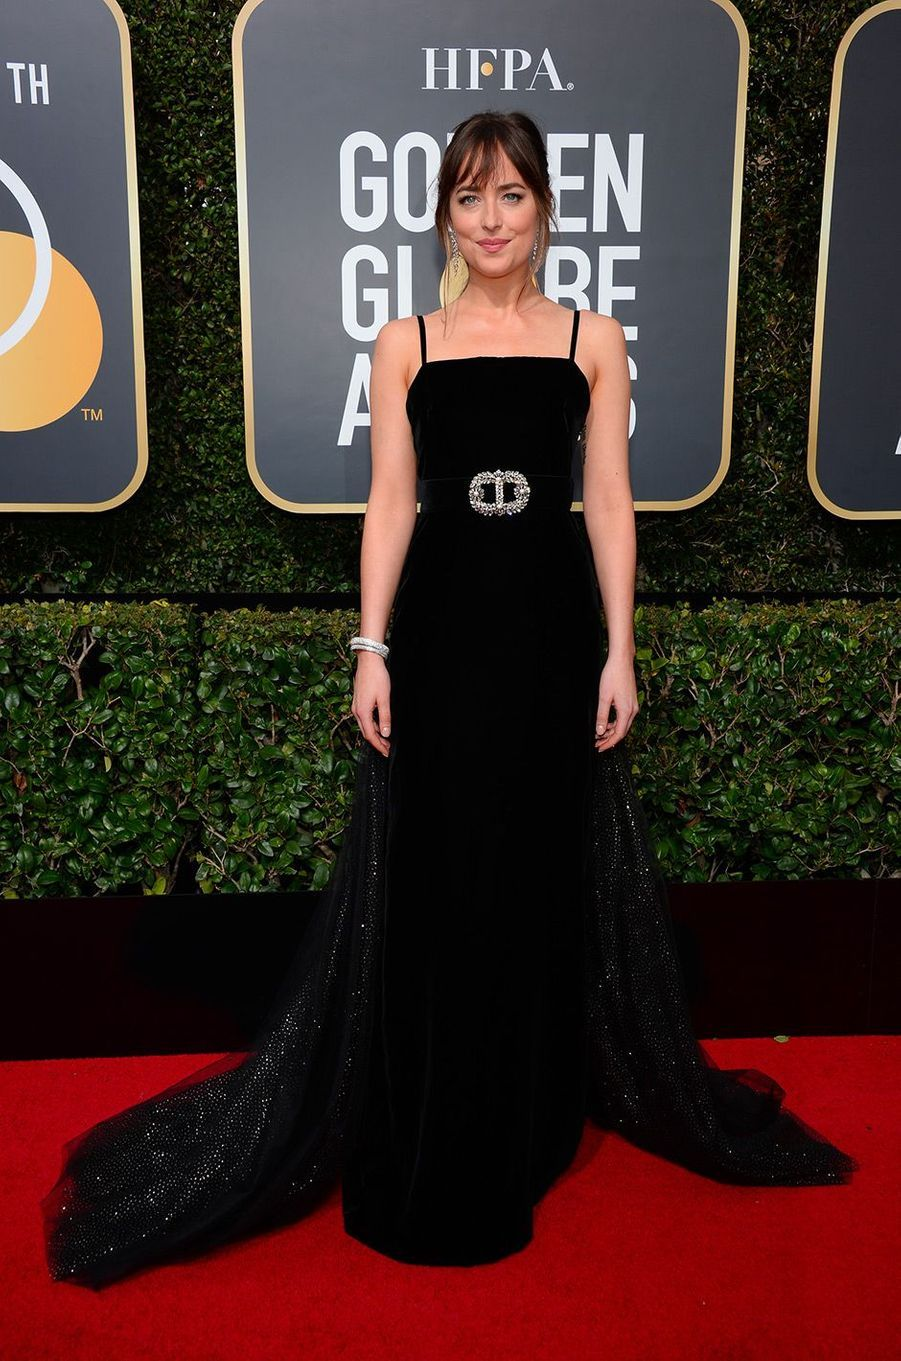 Dakota Johnson dans une robe Gucci aux Golden Globes 2018